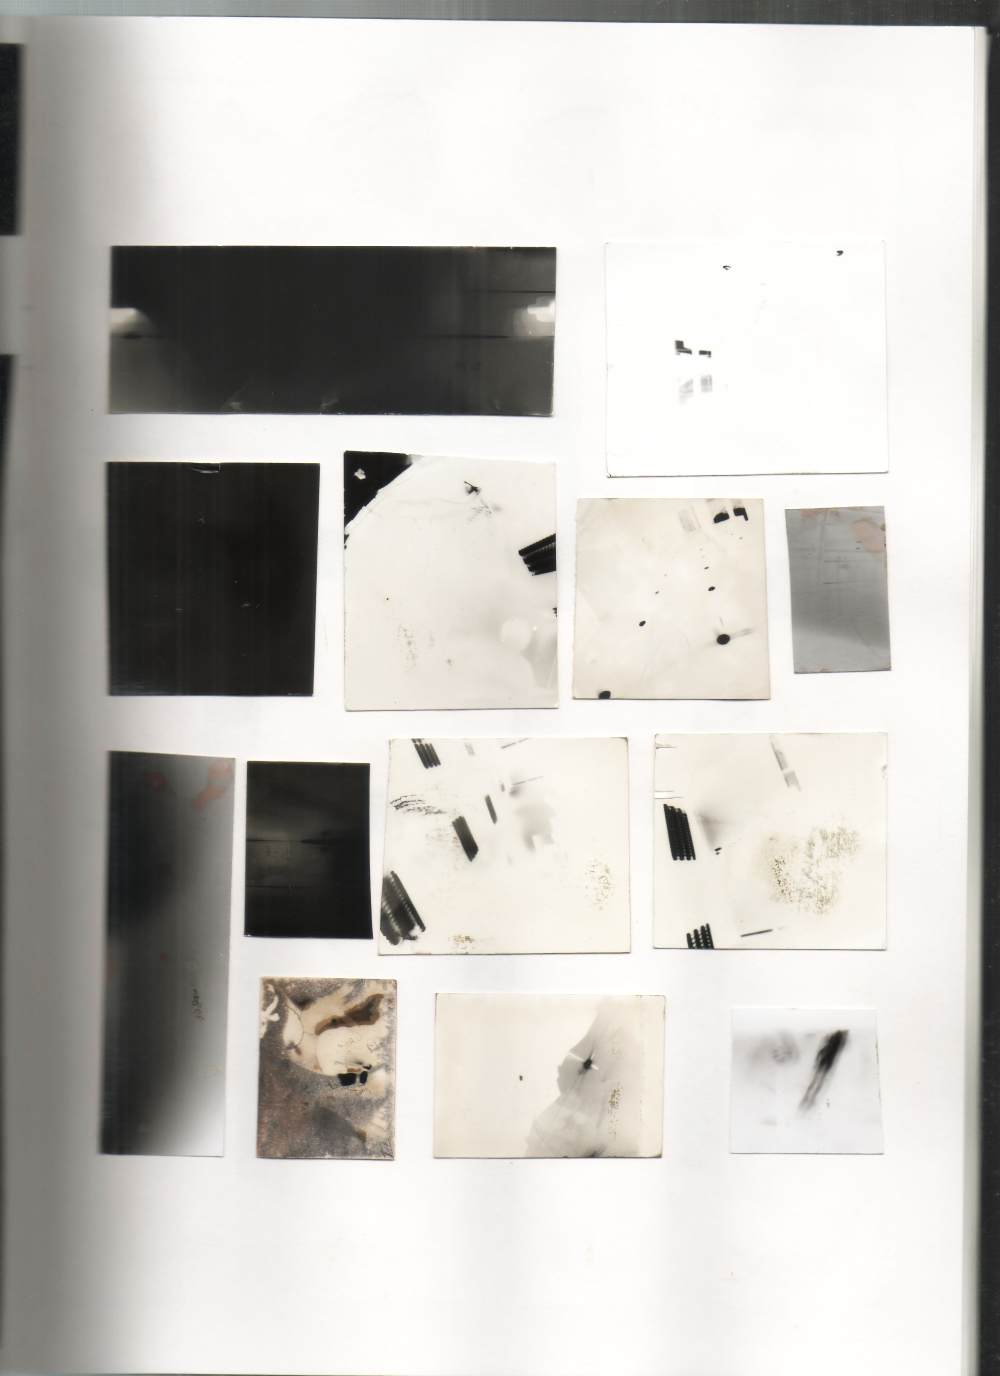 DP2008 Experimental Photography – Process Notebook